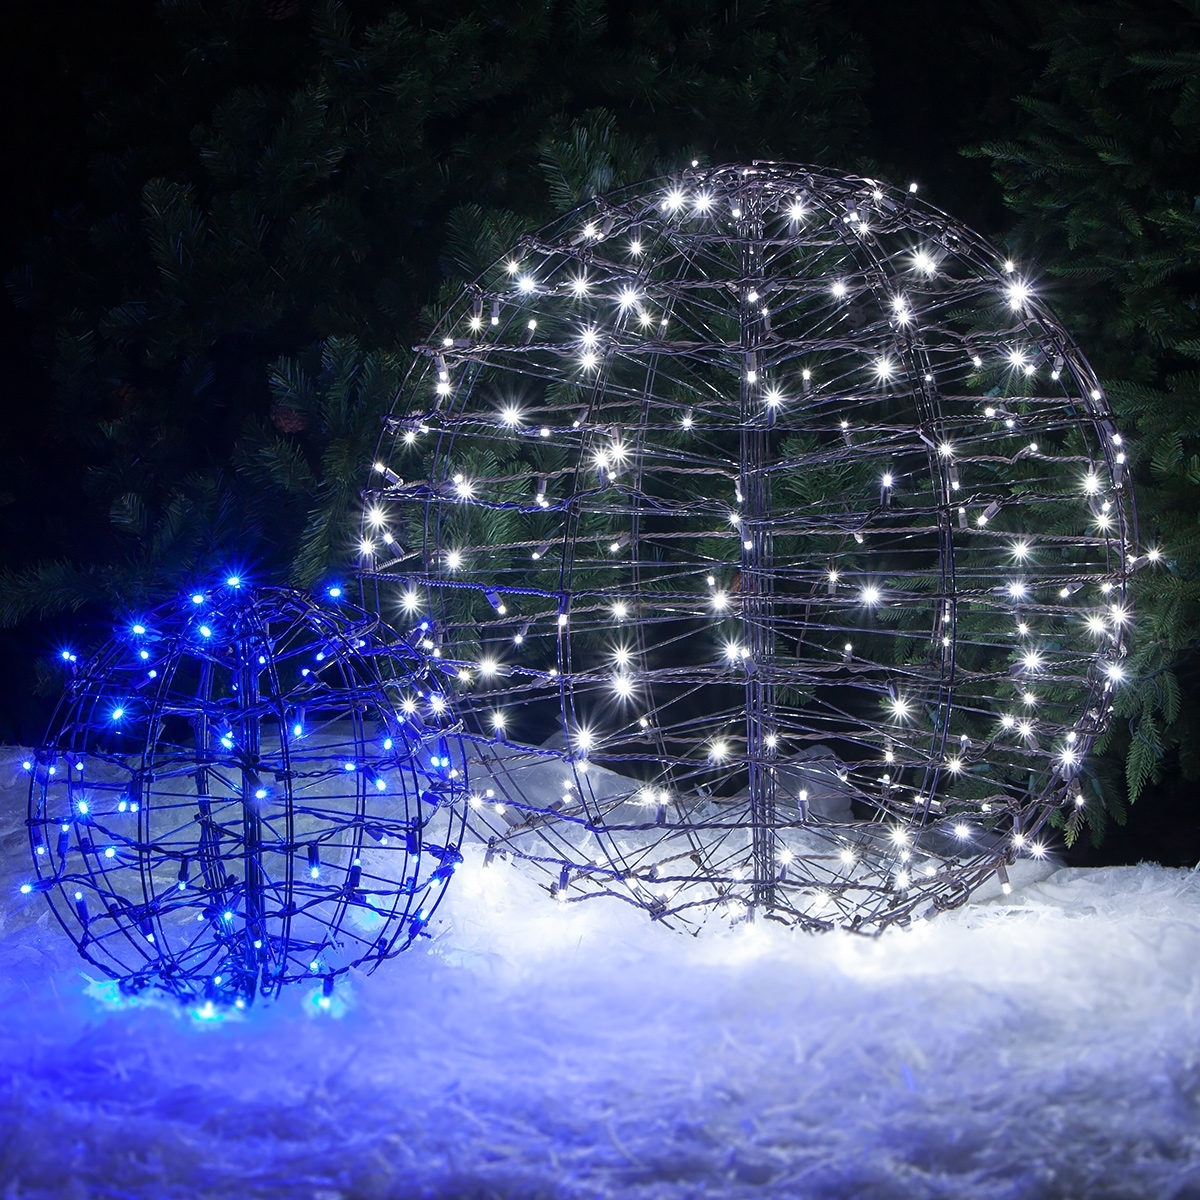 Outdoor Christmas Decorating Ideas – Yard Envy – Hanging Christmas Pertaining To Widely Used Outdoor Hanging Christmas Light Balls (View 20 of 20)